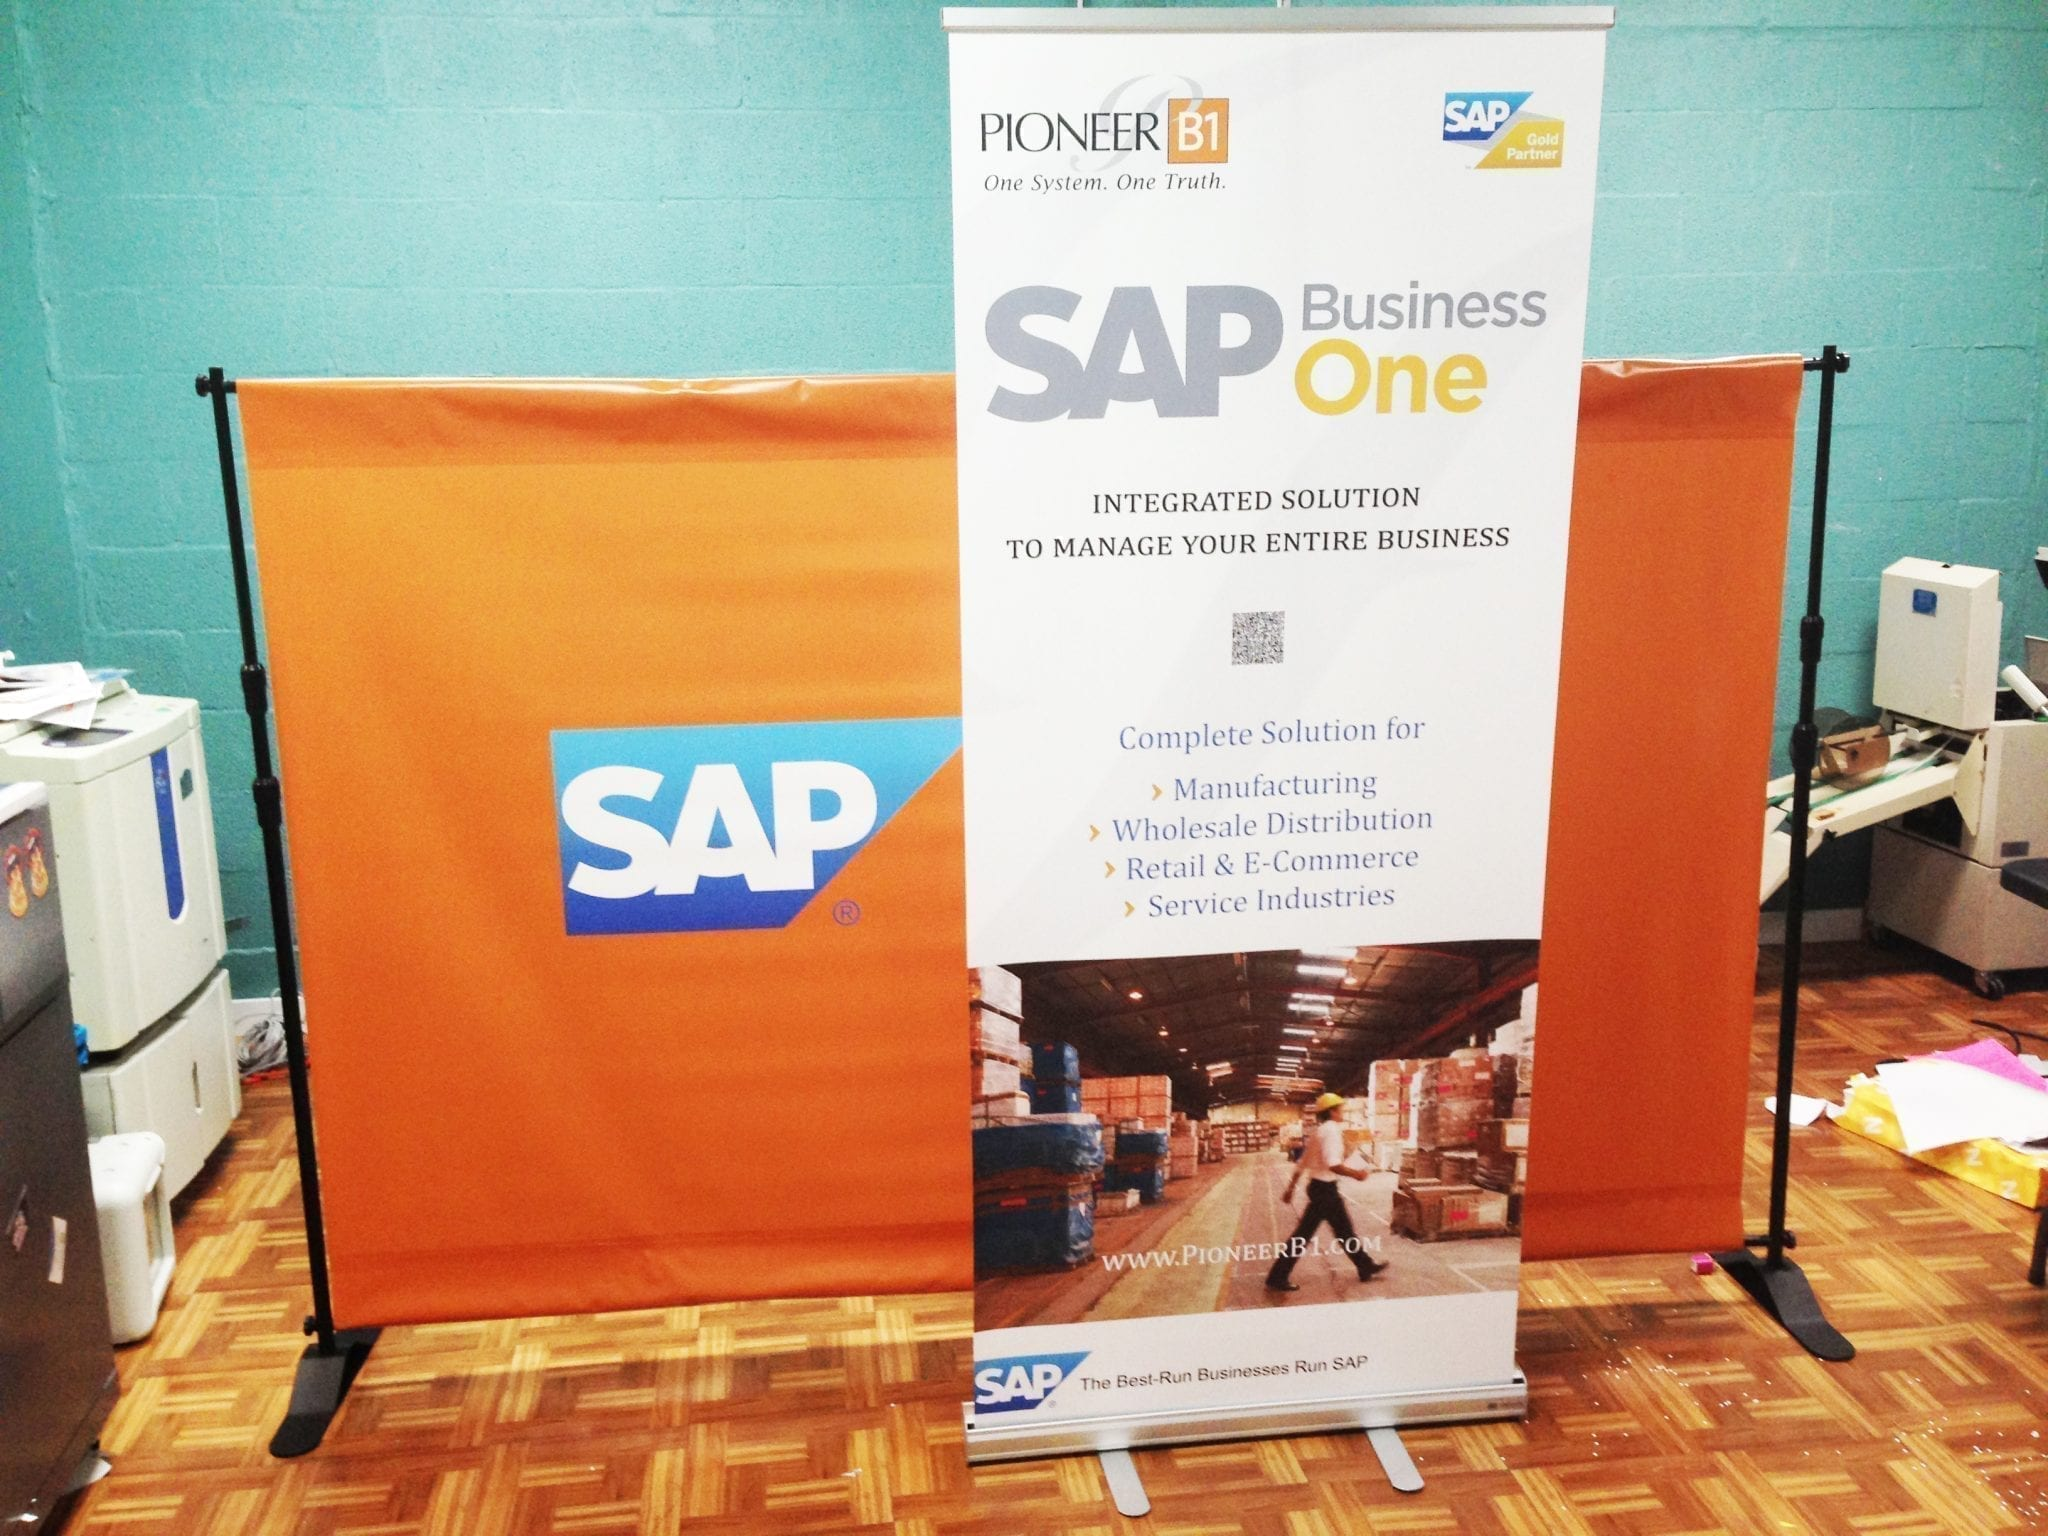 Backwall and retractable banner stand